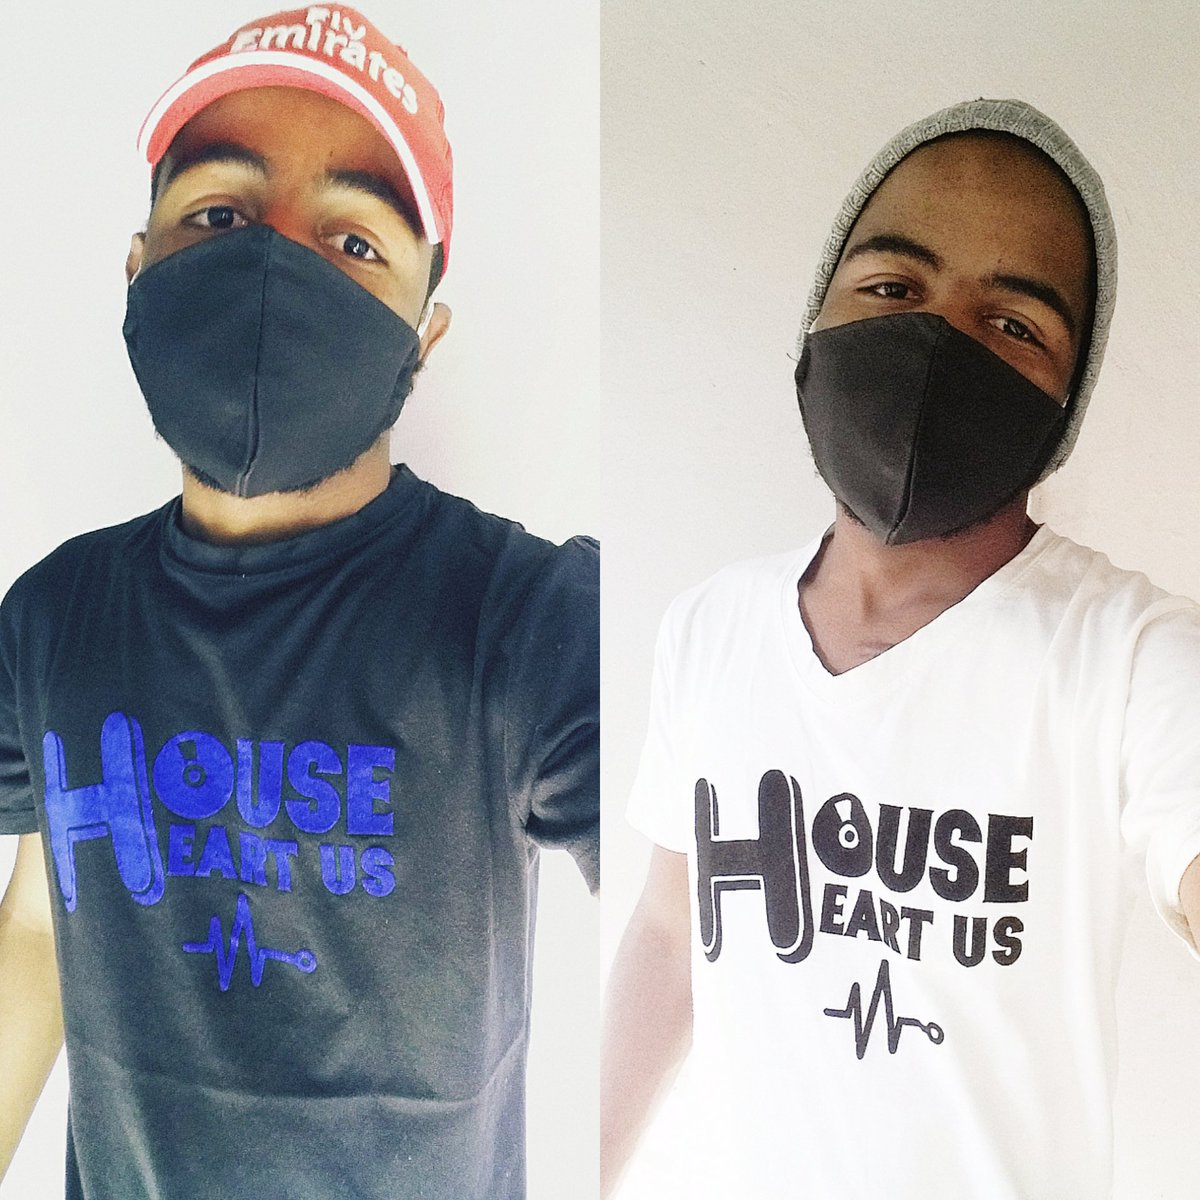 #HouseHeartUs 👕tees available for R220.00 to place your order contact @DJNocy_ on 07177411333 🙏🏽 #supportsmallbusiness #supportlocal #supportwomenrunbusinesses #SupportLocalBusinesses https://t.co/O95lKdmtt2